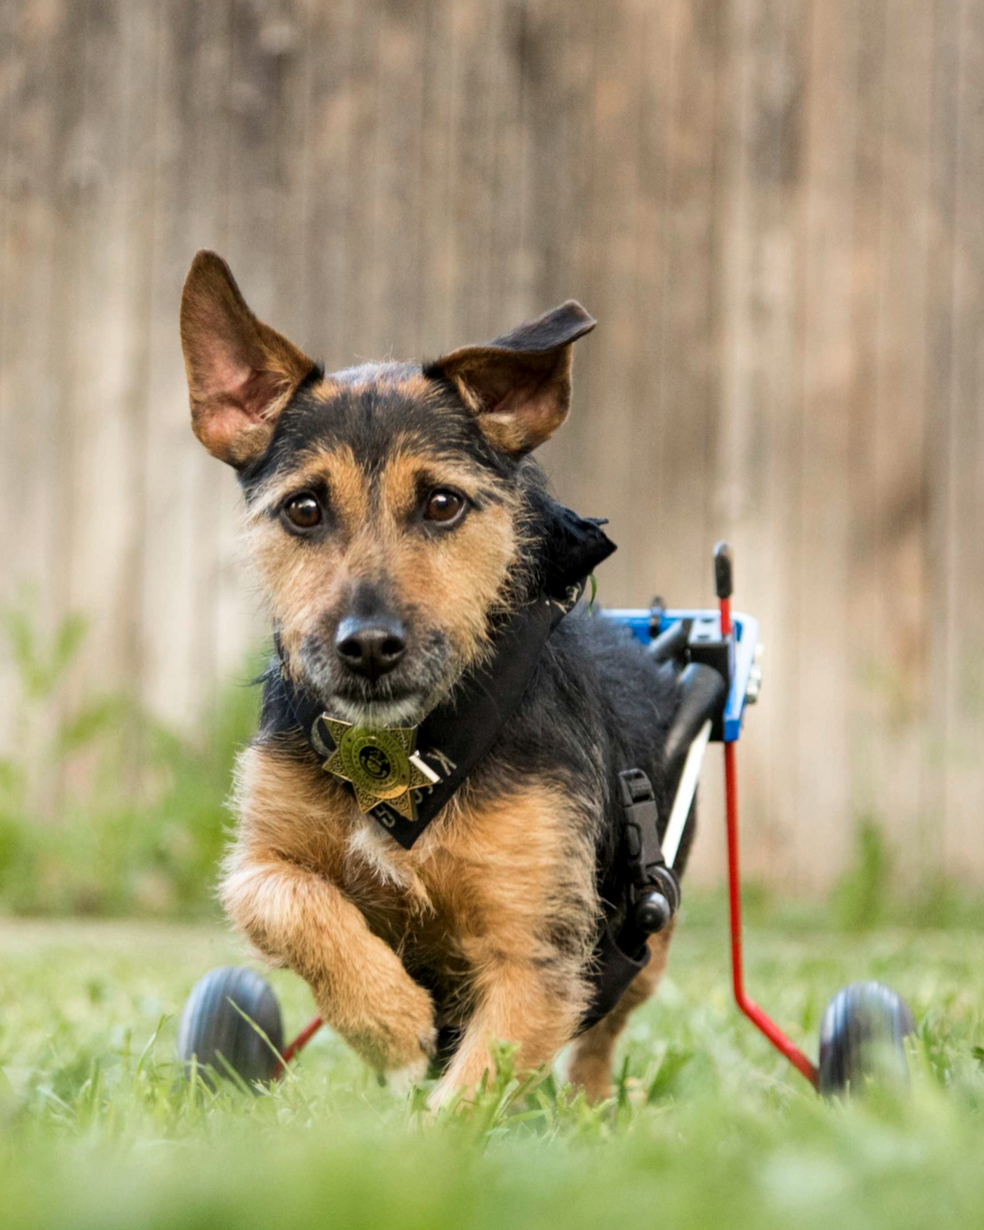 RIDDLE – 7 years old, Hunt Terrier   Riddle puts the terrorist in terrier. He had a spinal stroke in 2017 that left him paraplegic so now he rocks his wheelchair like the little ass kicker that he is. It hasn't slowed him down a bit (sometimes I wish it would, actually) and he still comes hiking and camping with us all the time. His favorite activities include eating Blue Jays, lounging in sun spots, and jumping off of couches or flights of stairs. Has nine lives and has used eight of them already.